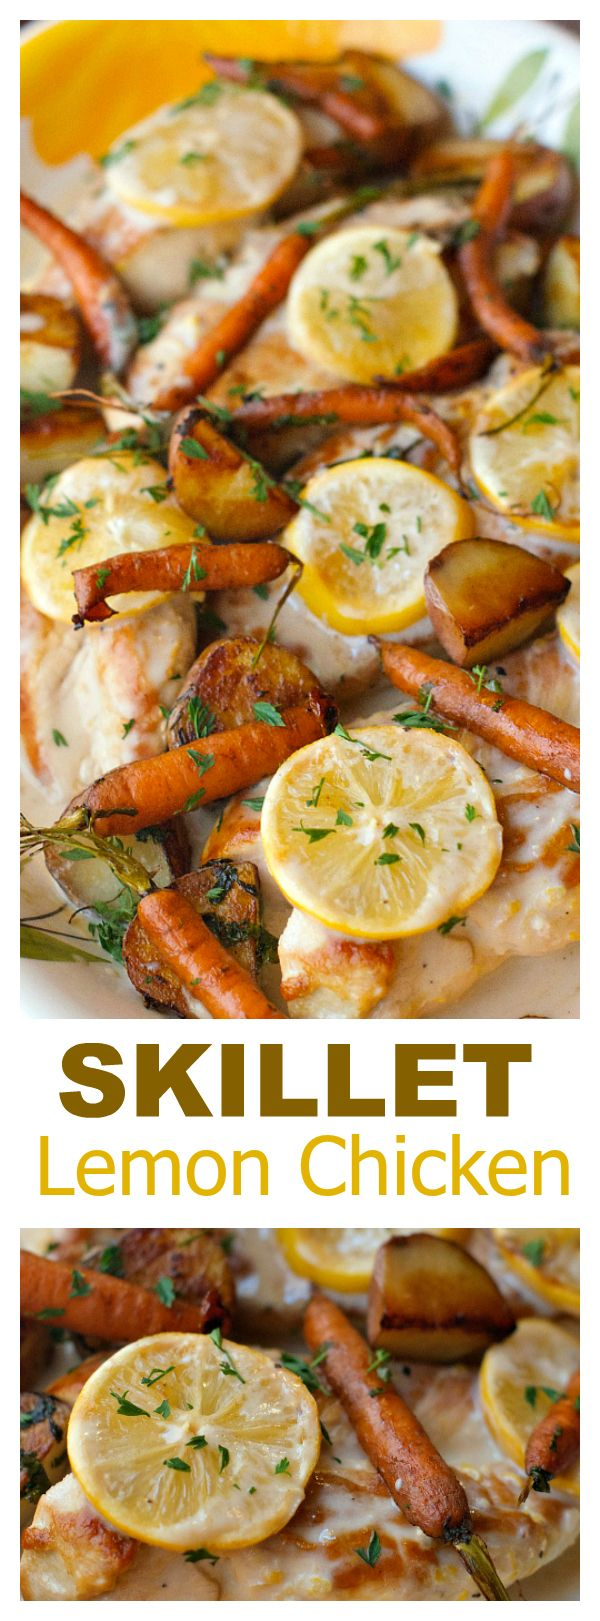 Skillet Lemon Chicken is the chicken and vegetables dish, with a very simple cream sauce drizzled over the roasted flavors, for a potluck or weeknight meal!